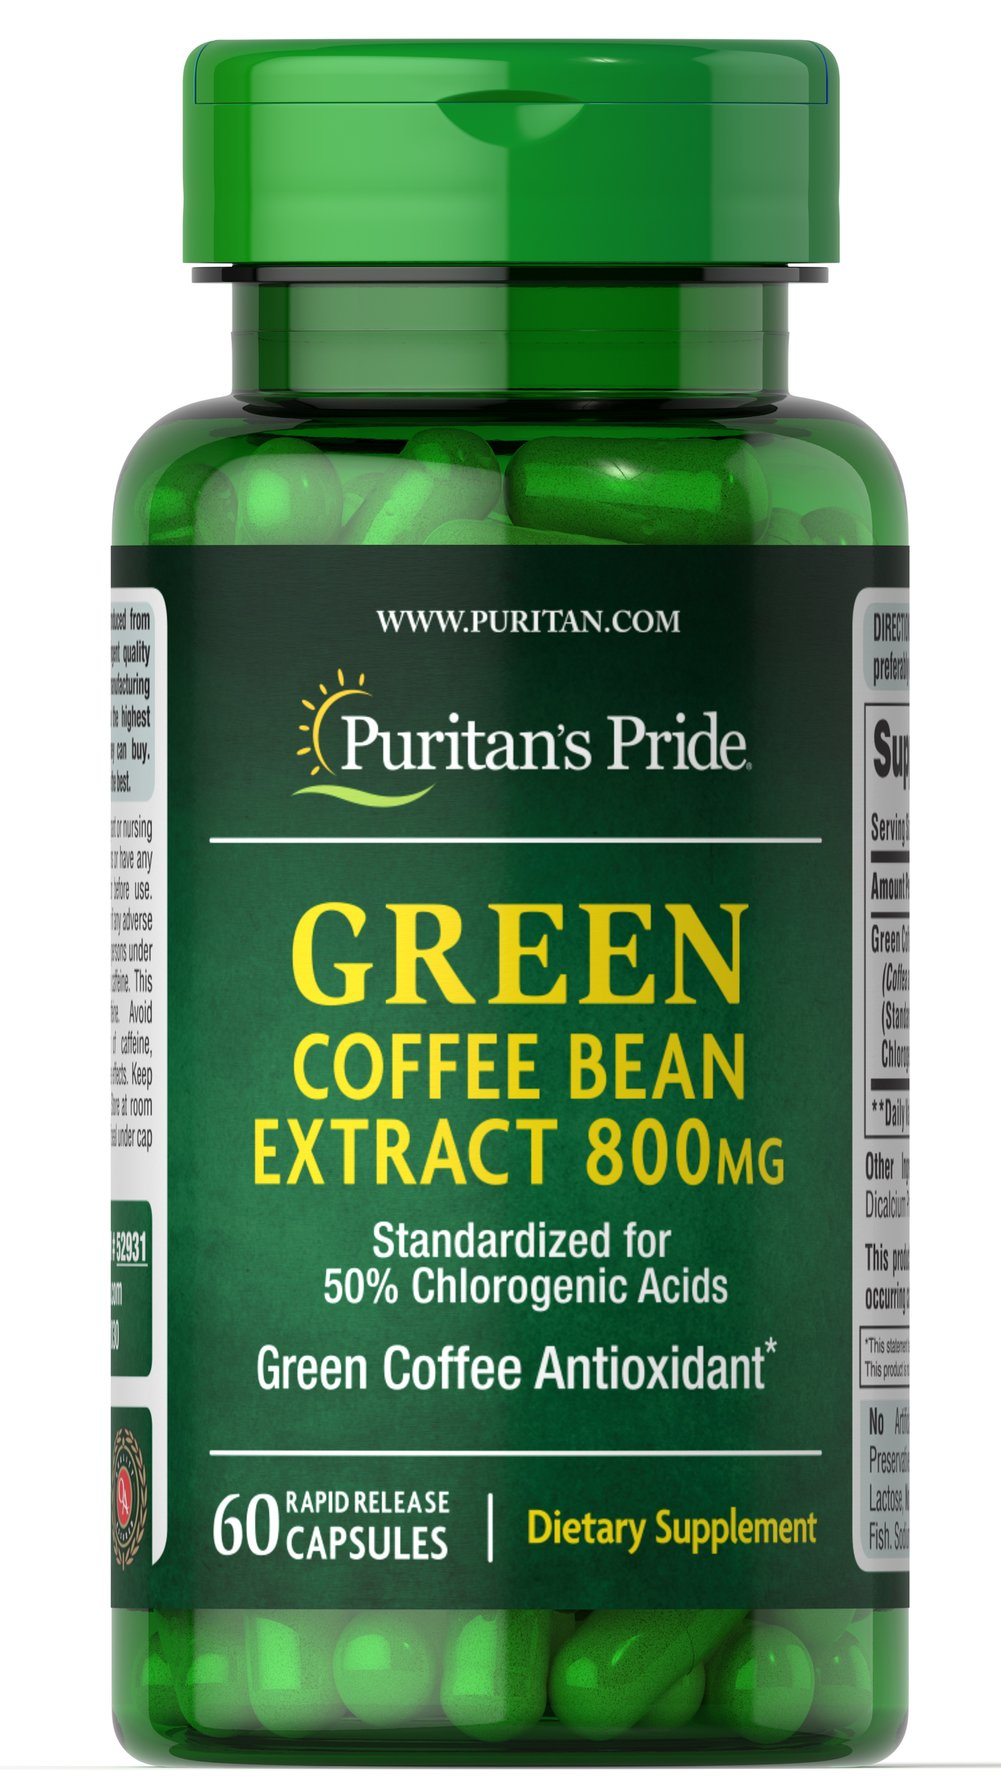 Green Coffee Bean Extract 800 mg Green Coffee Bean extract is made from coffee beans that are not roasted. This unique extract provides 45 percent chlorogenic acids. Green coffee is a major source of chlorogenic acids in nature and contains antioxidant properties.** Includes 60 rapid release capsules. 60 Capsules 800 mg $23.79